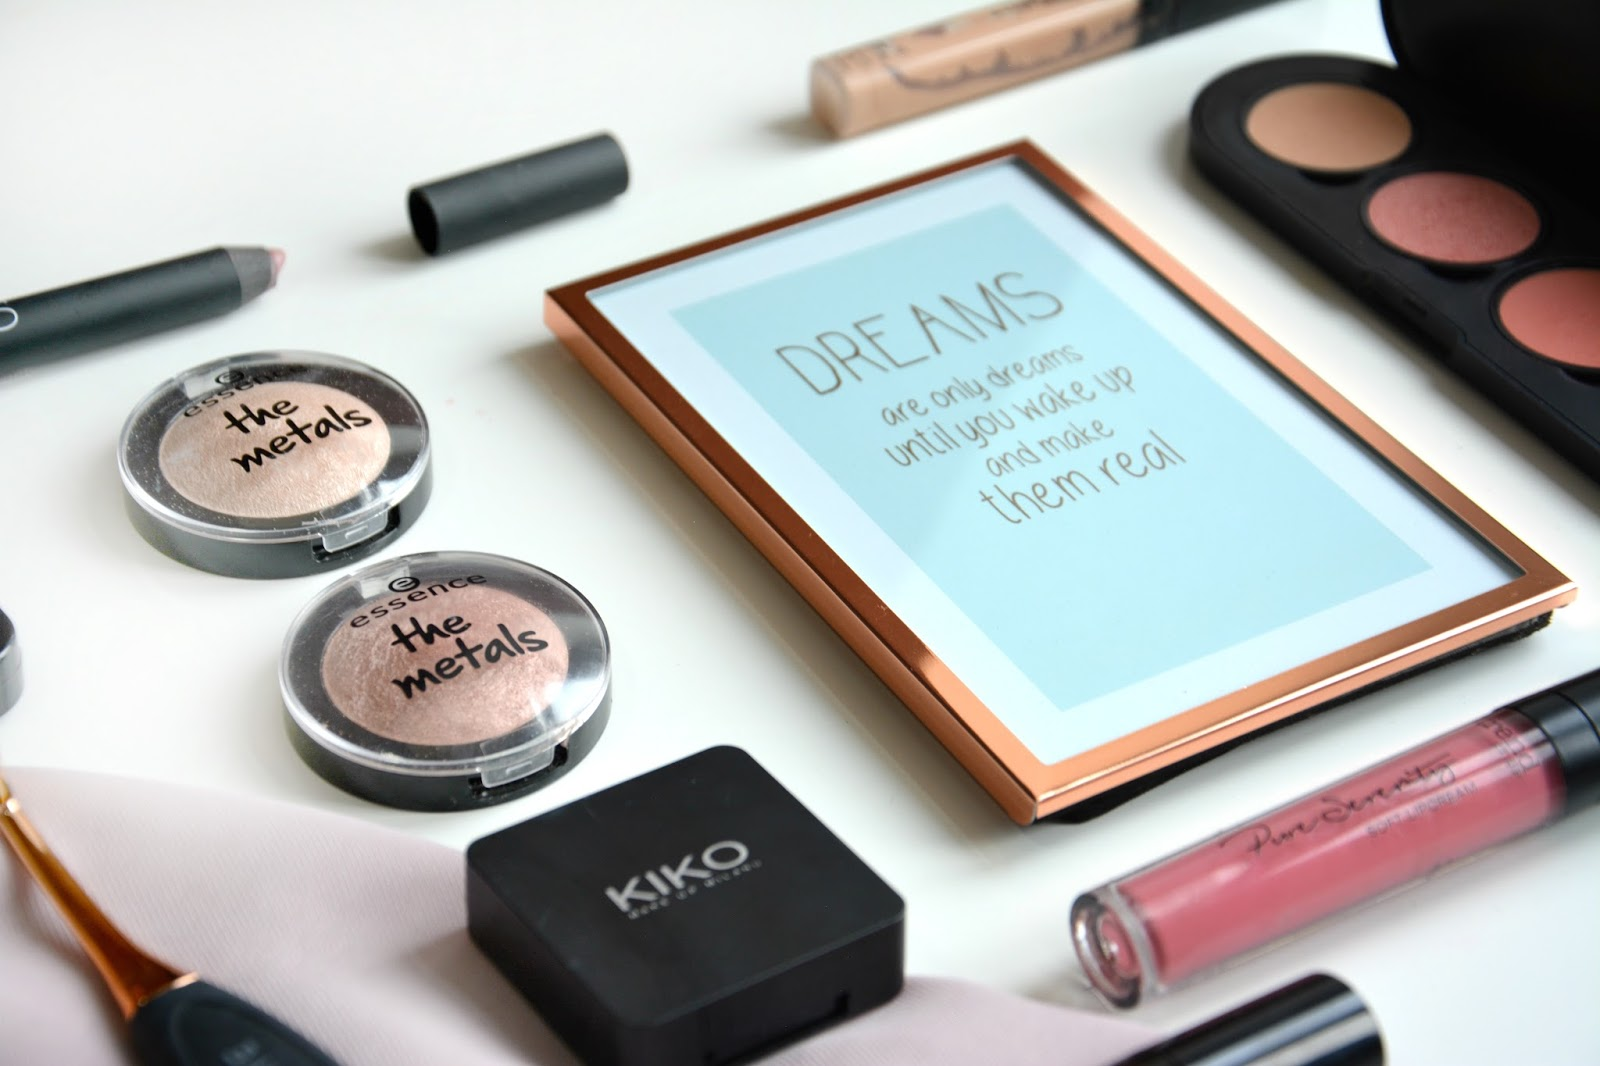 Primark picture frame; Primark Quote; essence The Metals Eye Shadow Rose Razzle-dazzle; essence The Metals Eyeshadow Ballerina Glam; Nars Velvet Matte Lip Crayon Bettina; Kiko Eyeshadow, essence My Must Haves Palette, Trend It Up Comfortable Matte Liquid Lipstick